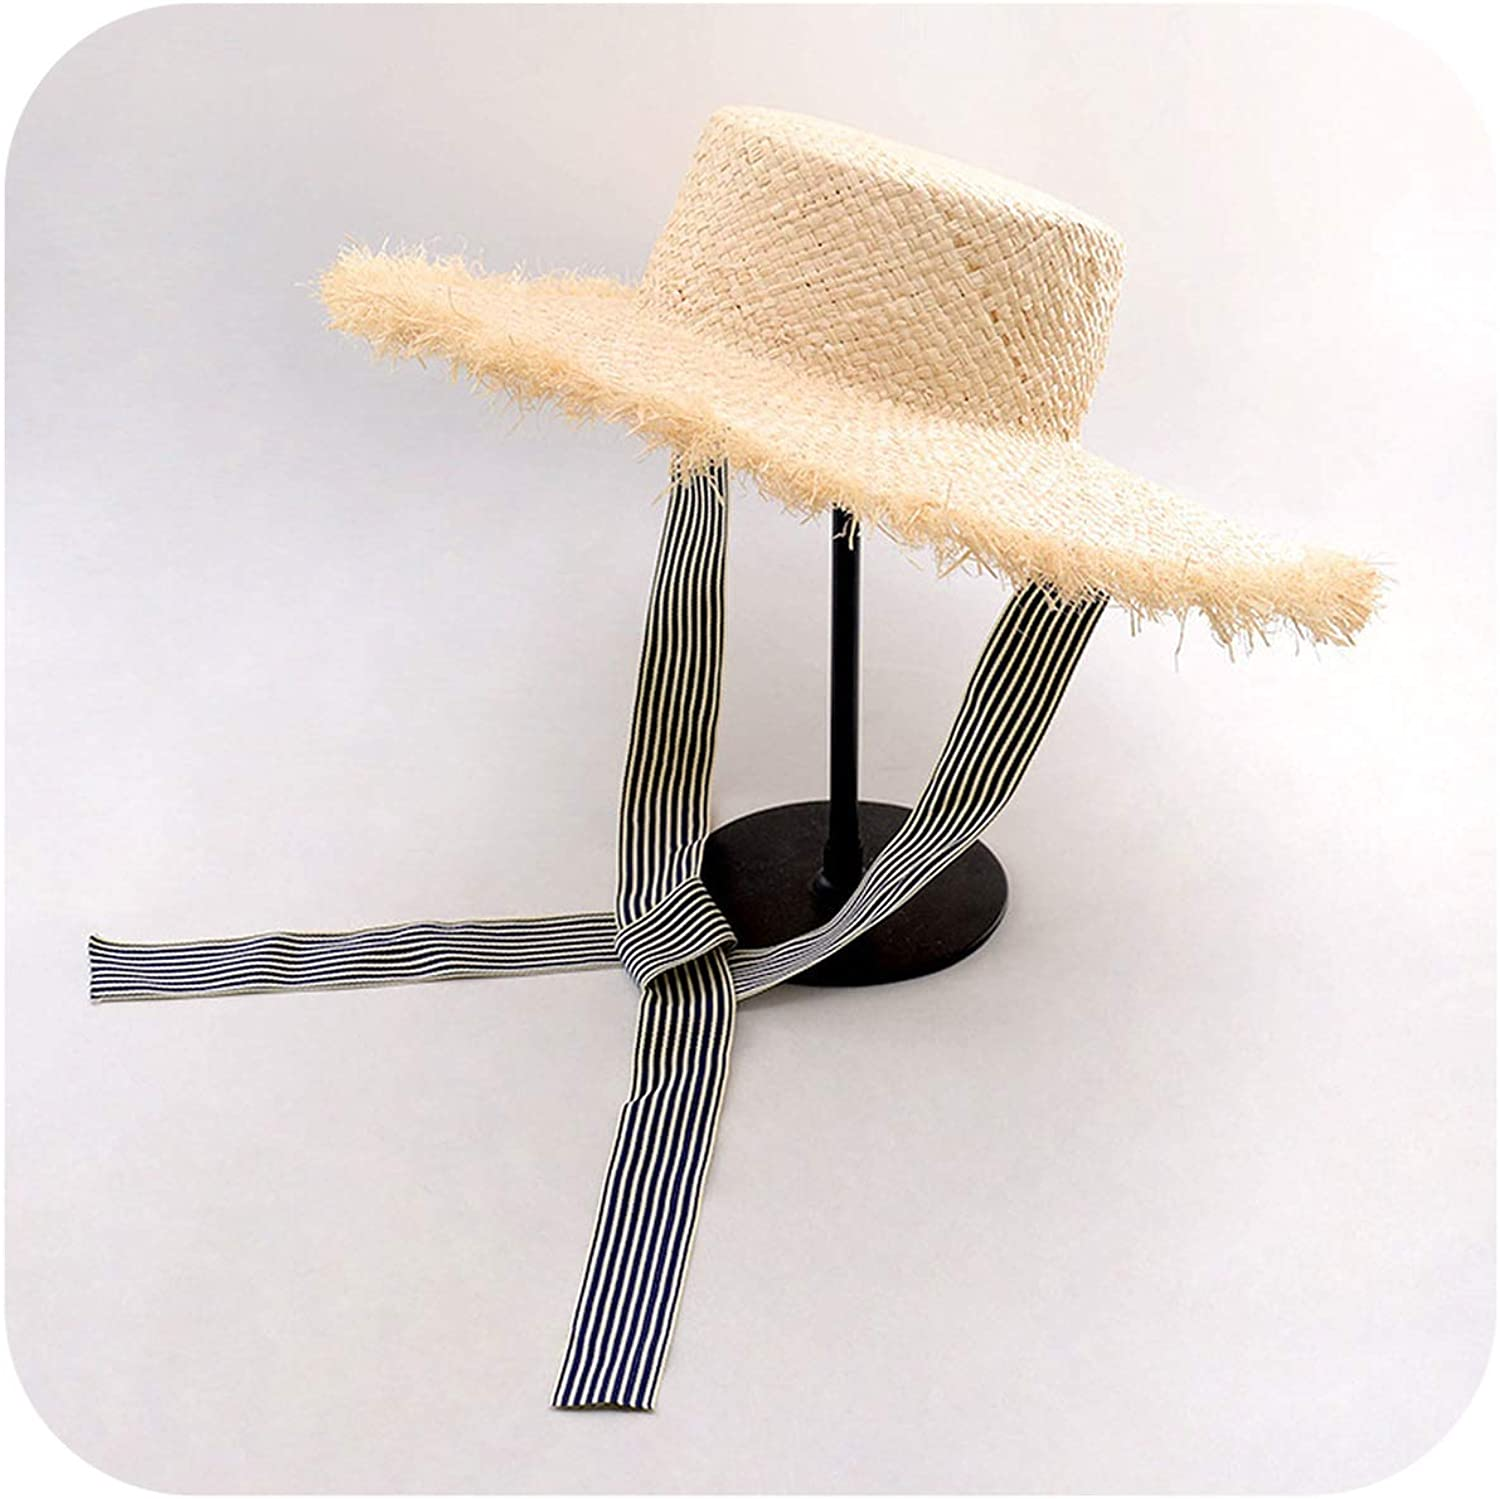 PrivateSpaceHats with Ribbon Tie Summer Sun Hat for Wome,